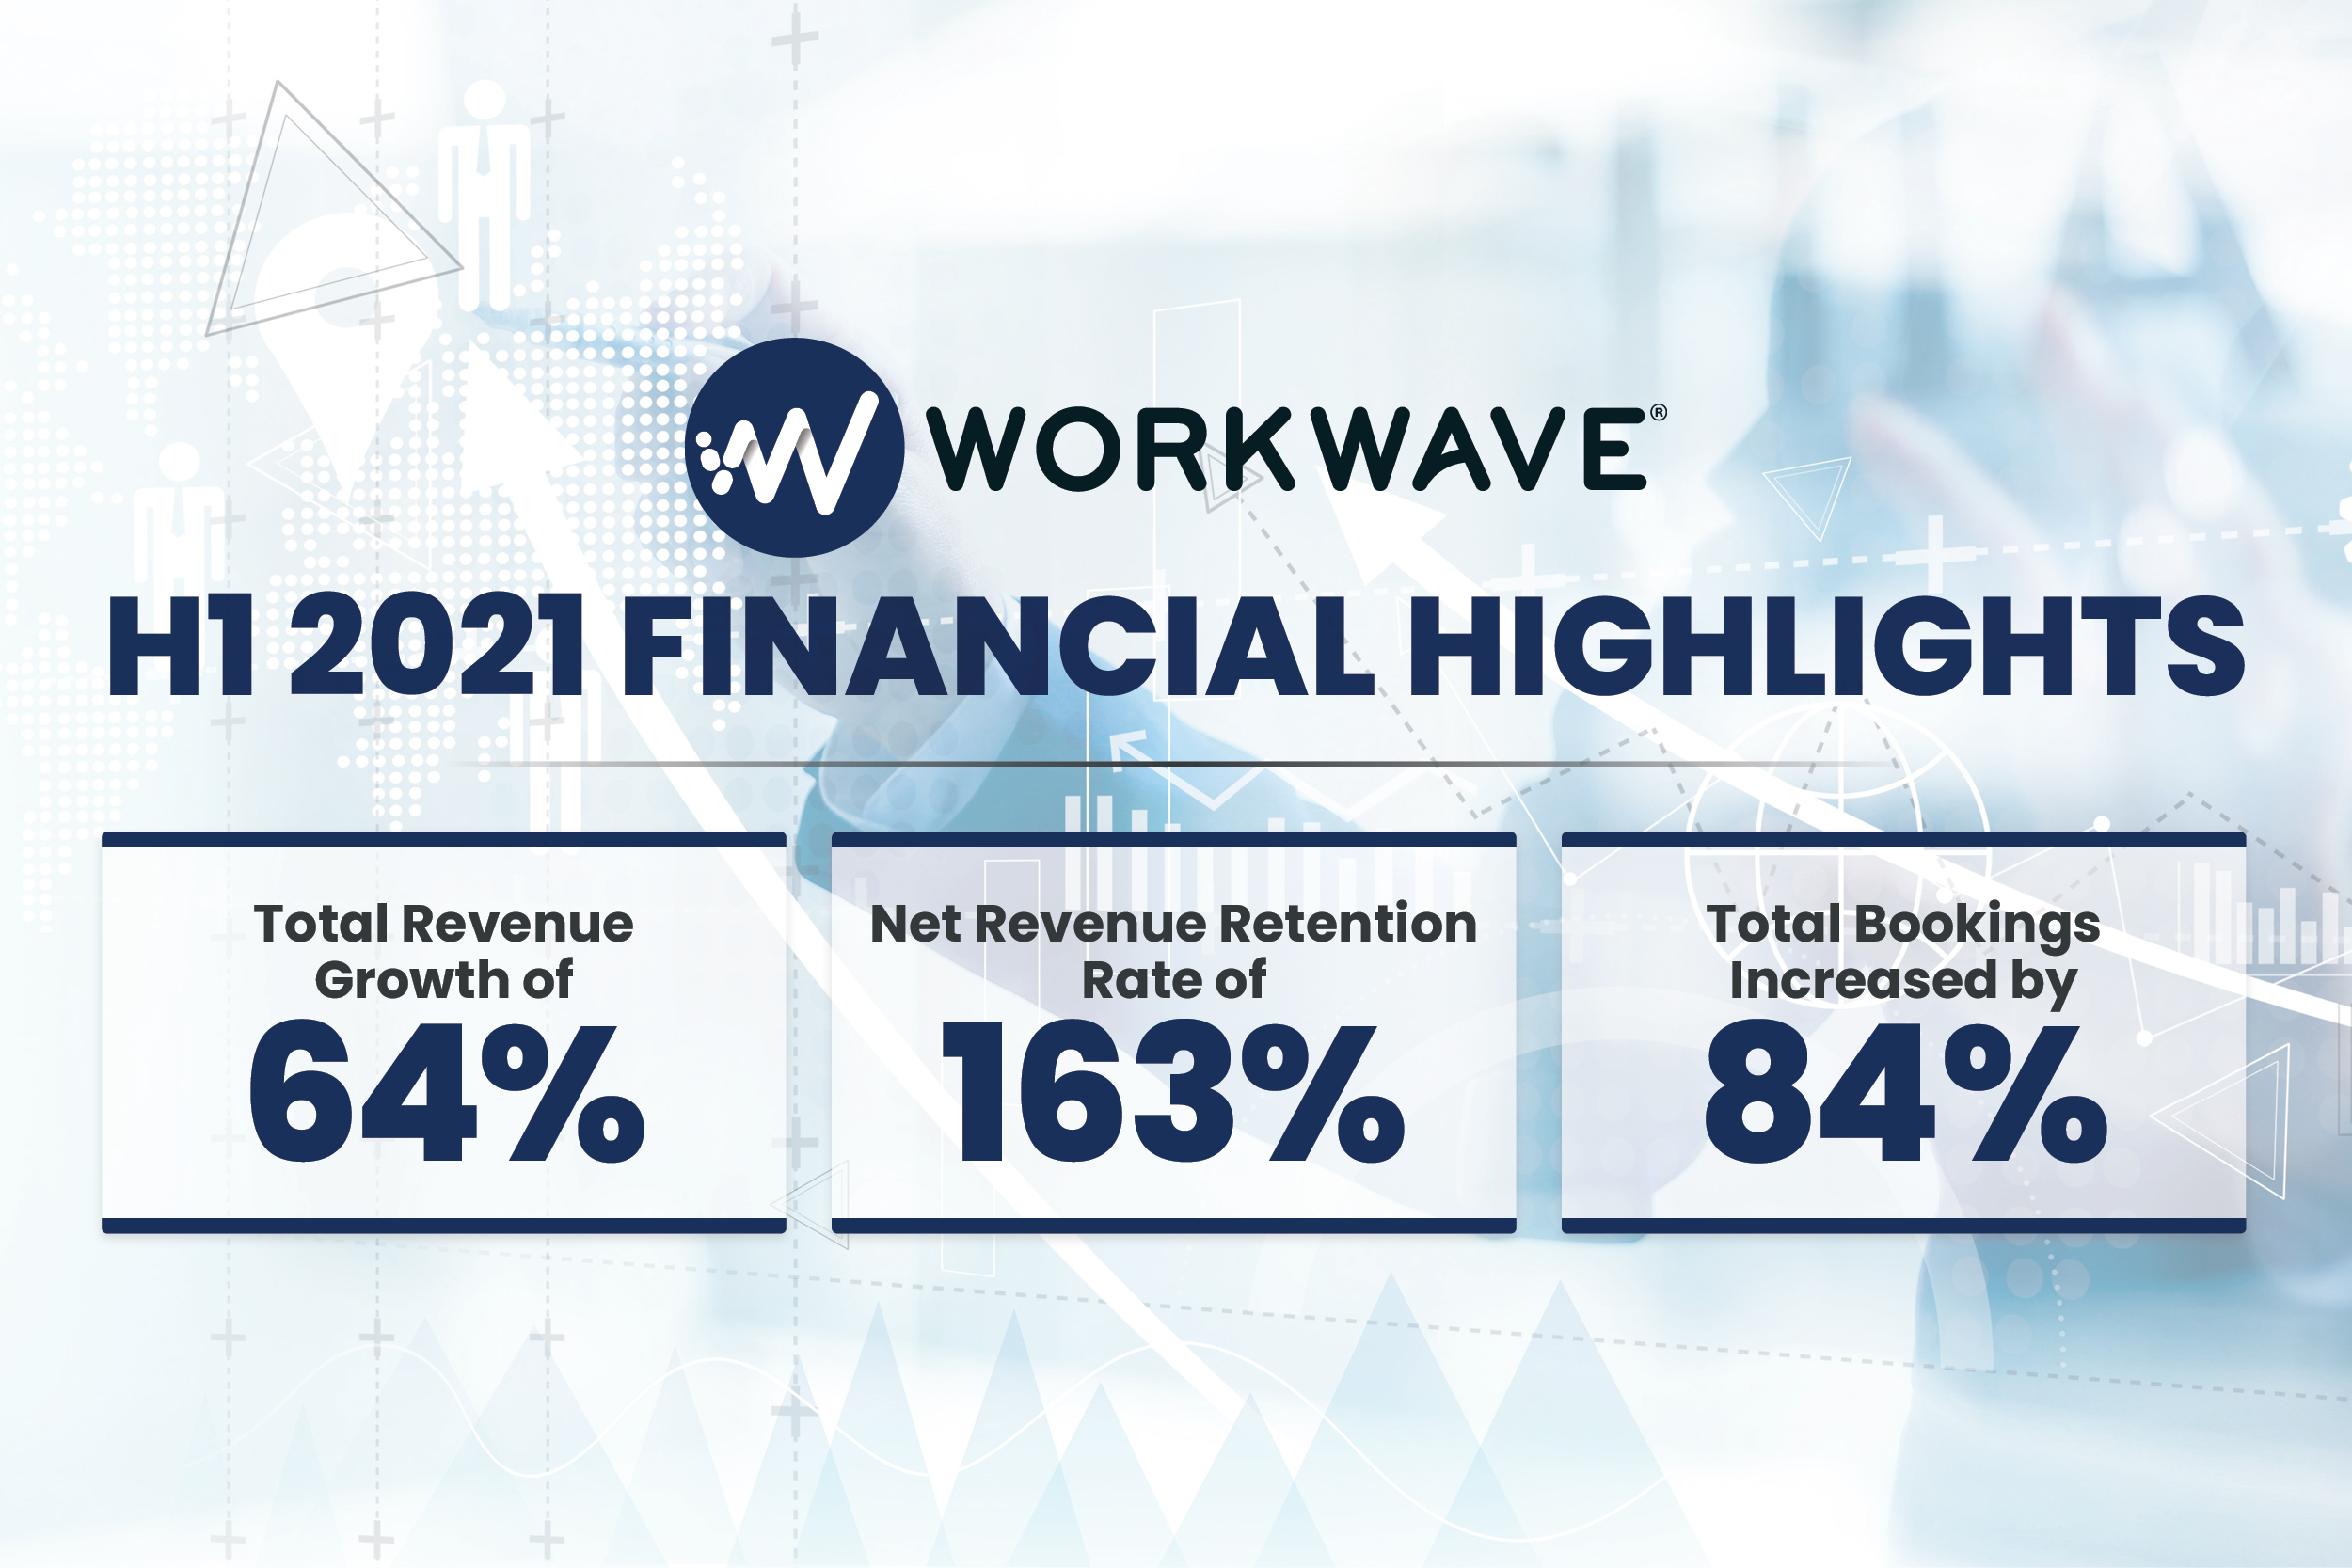 WorkWave Demonstrates Significant Financial Success Through First Half of 2021